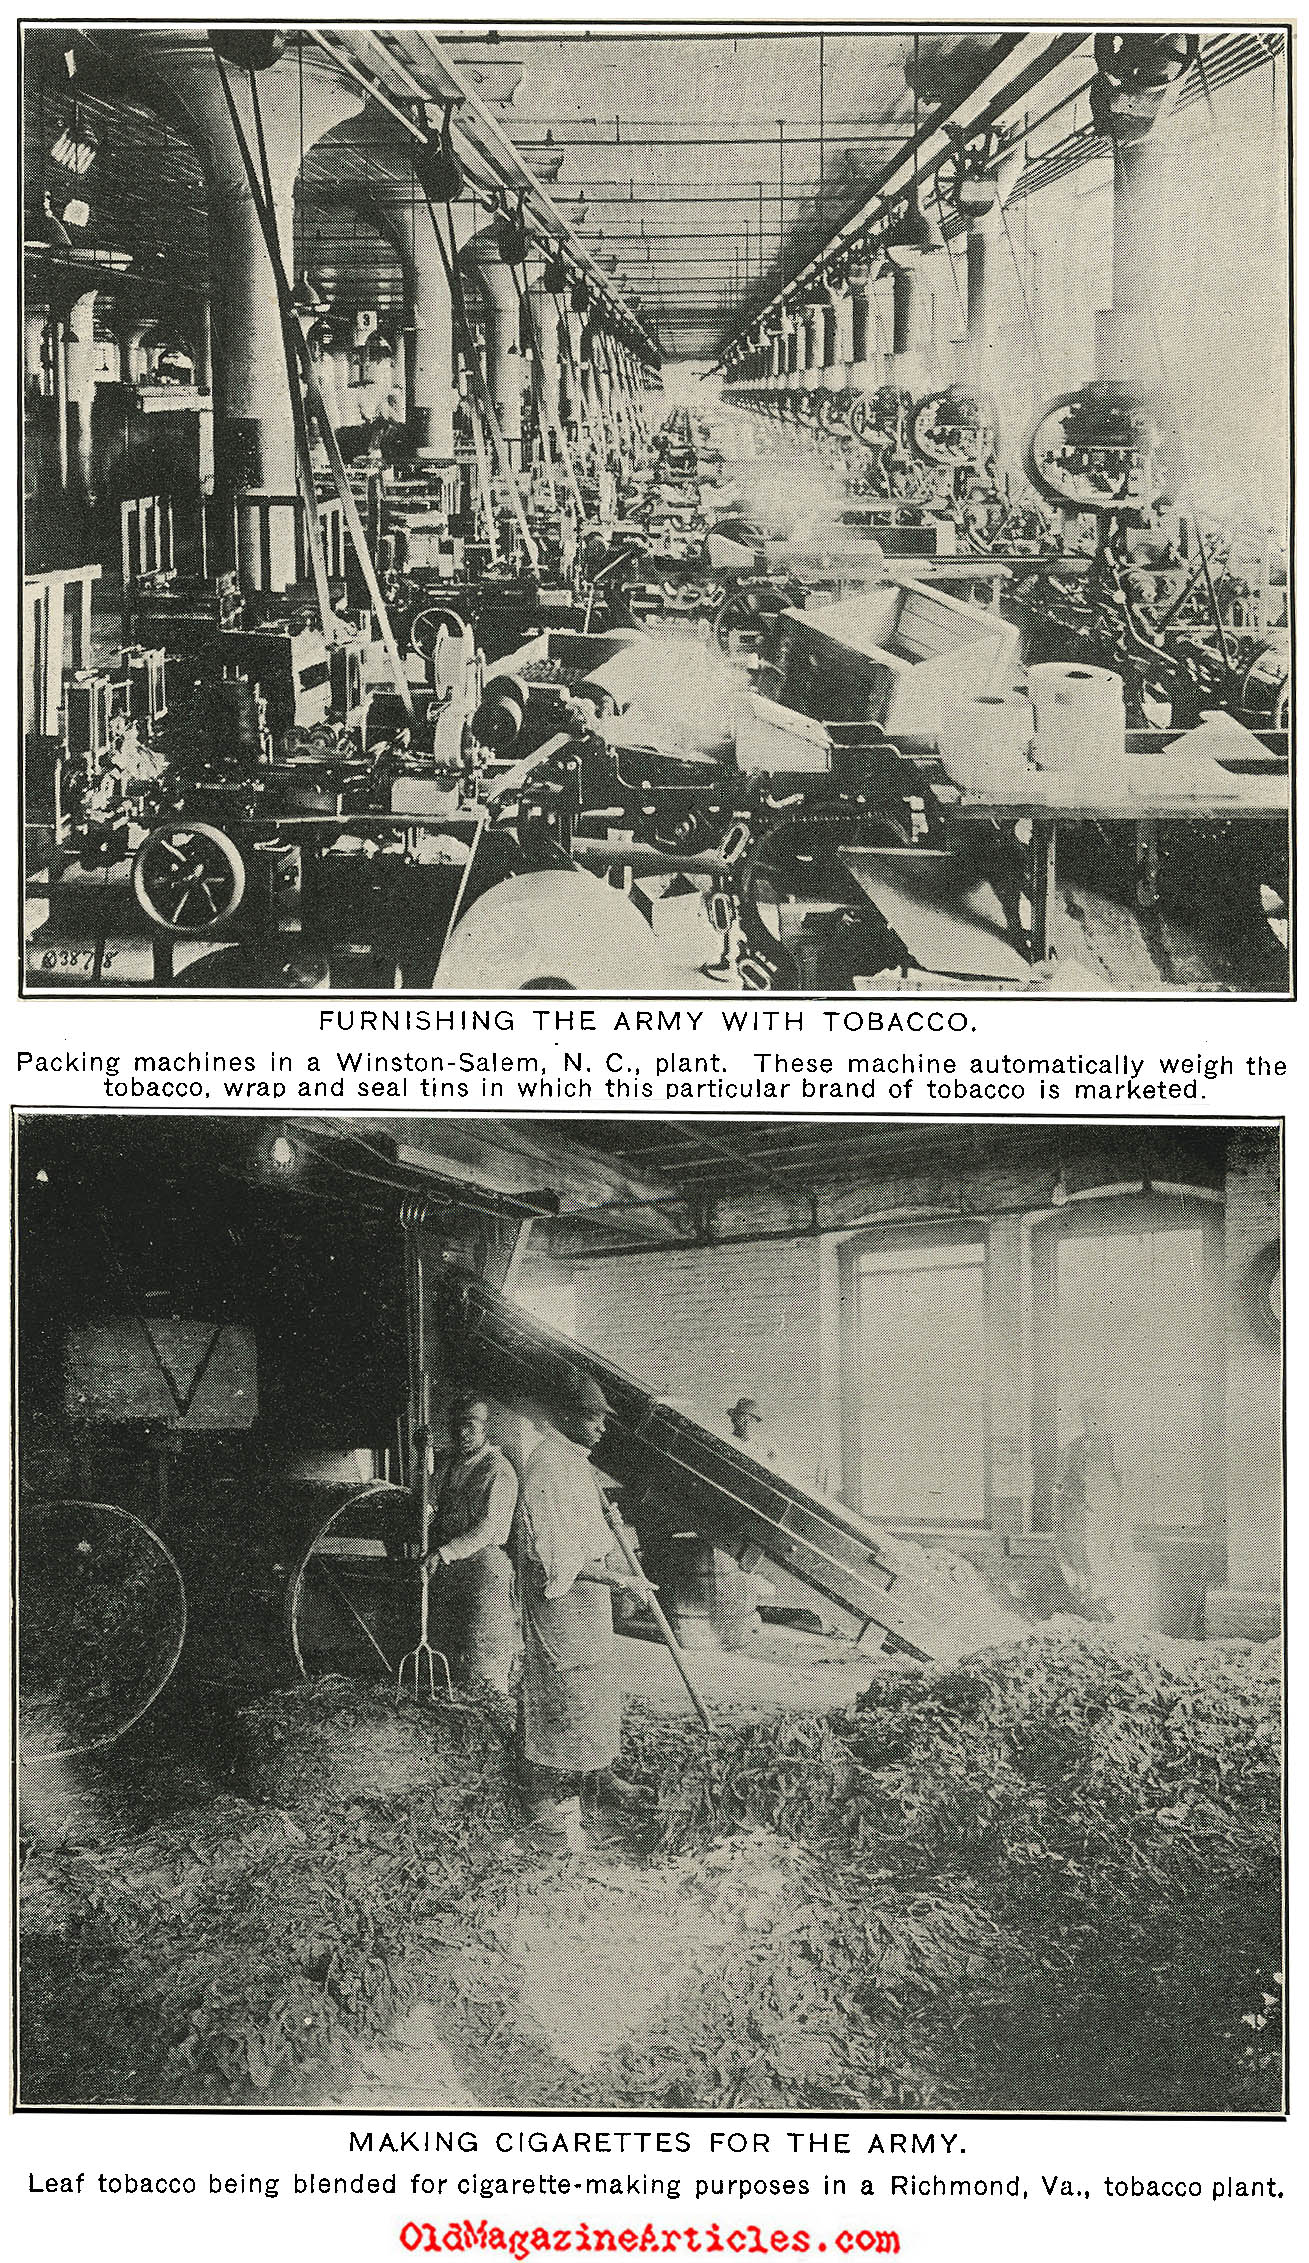 Supplying Tobacco to the AEF (America's Munitions, 1919)